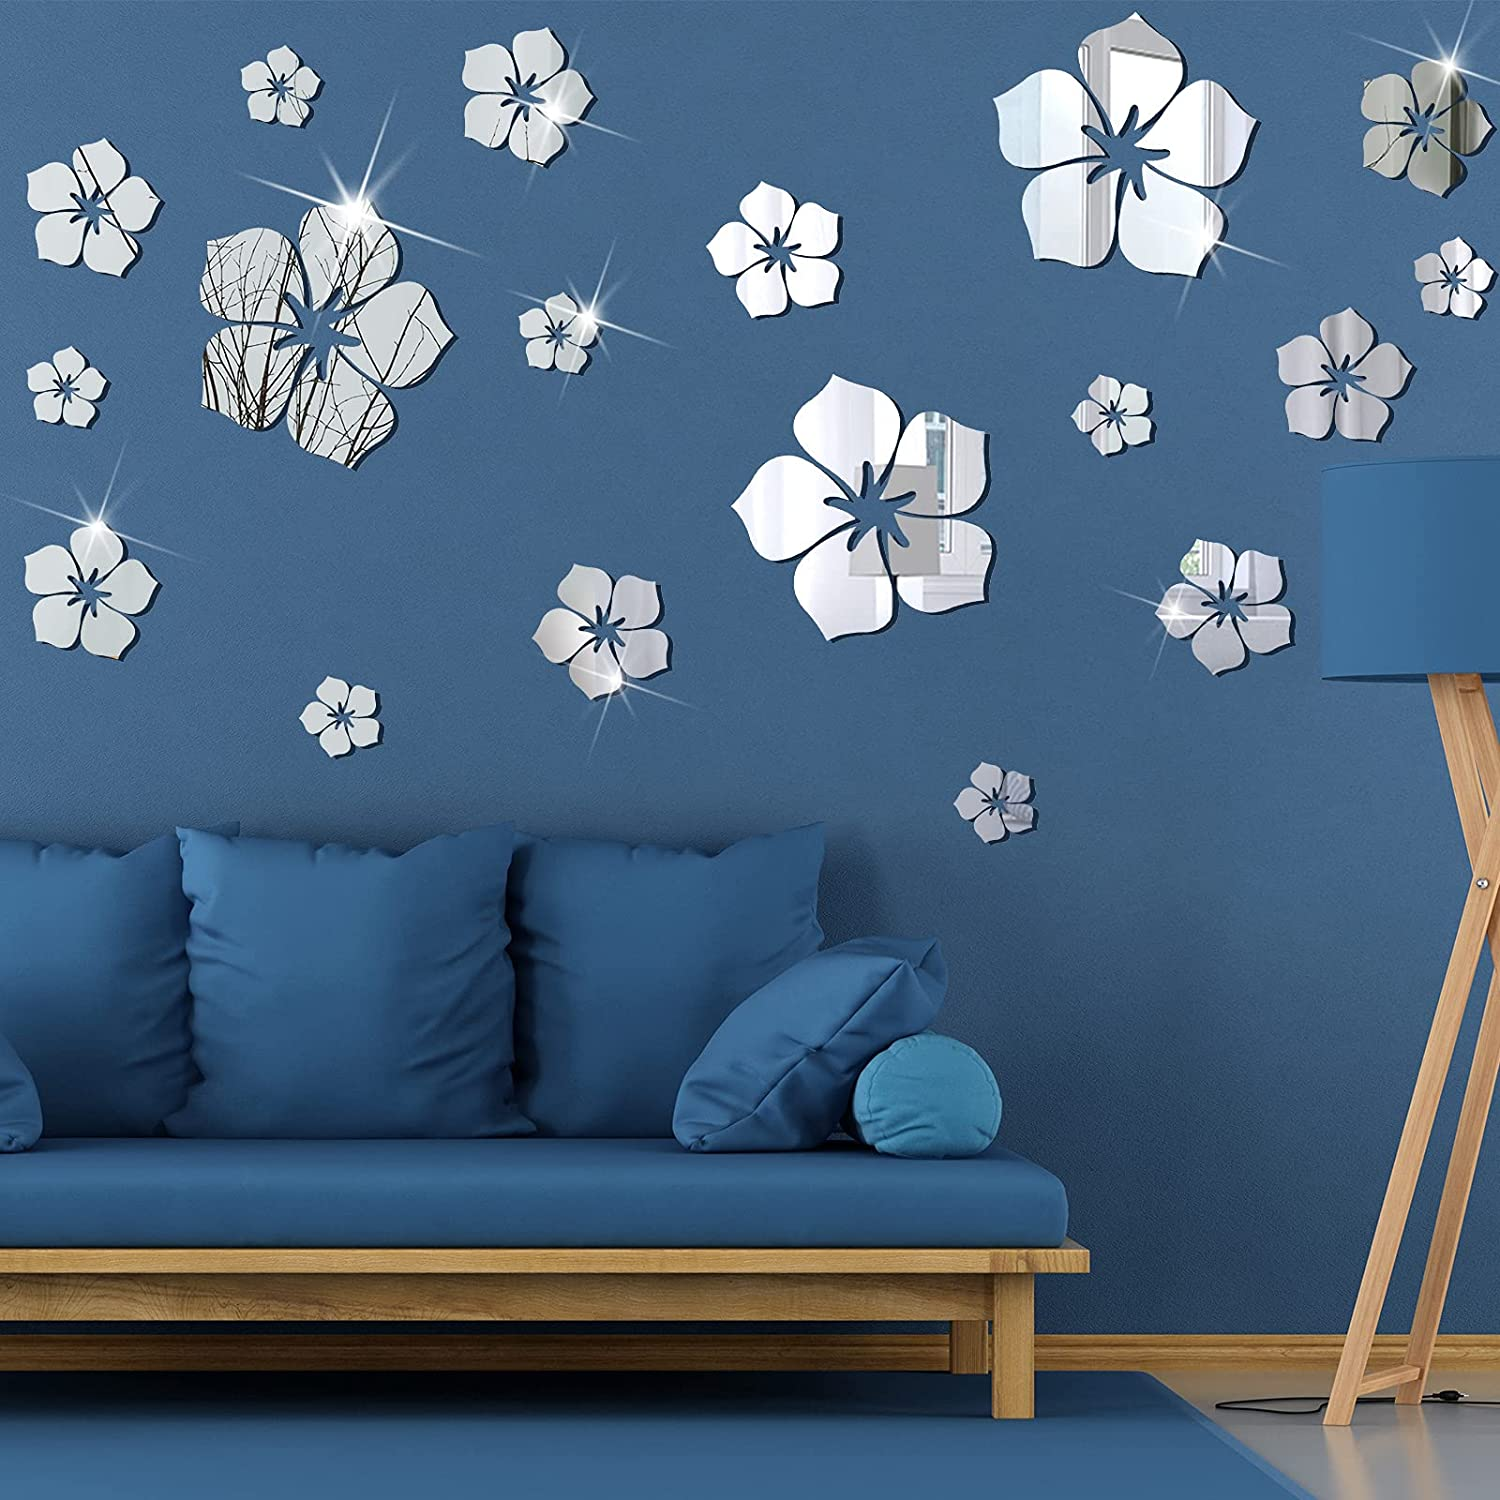 36 Pieces 3D Acrylic Mirror Wall Decor Stickers Sakura Quotes Wall Stickers Removable Family Wall Decals Motivational Family Flower Mirror Stickers for Office Dorm Home Mirror Wall (Silver)